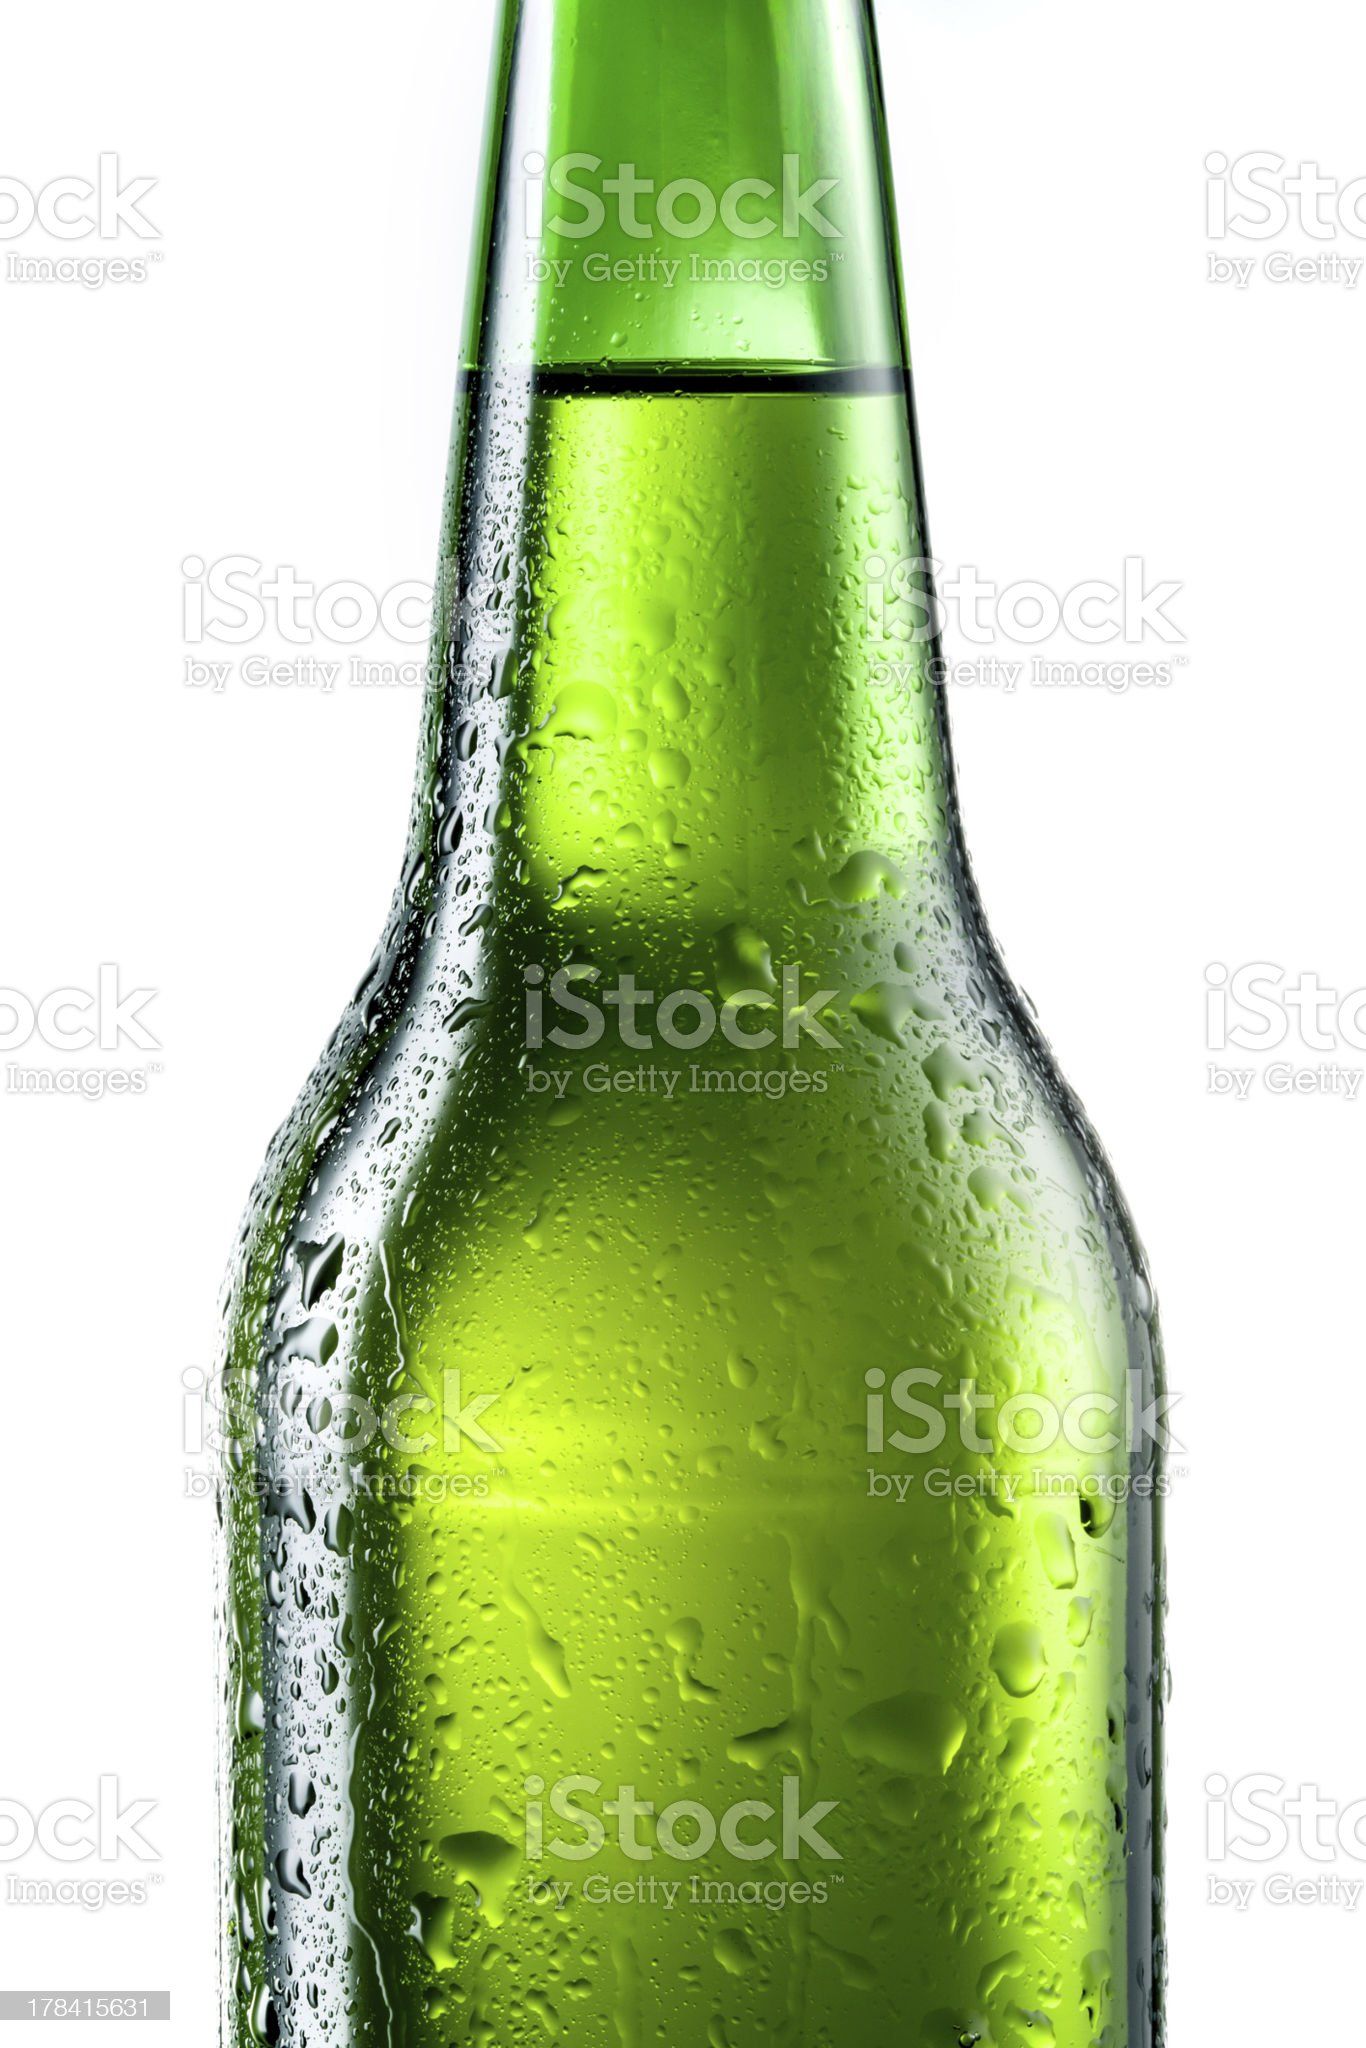 Bottle of beer with drops isolated on white royalty-free stock photo